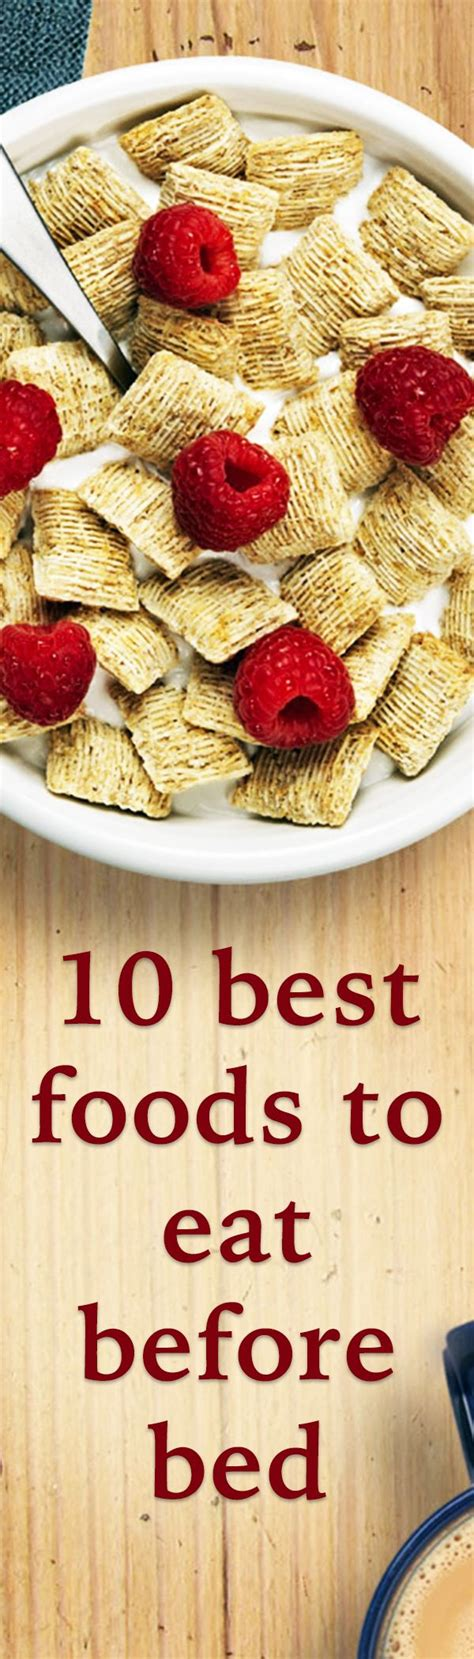 best snacks before bed best 25 eating before bed ideas on pinterest good